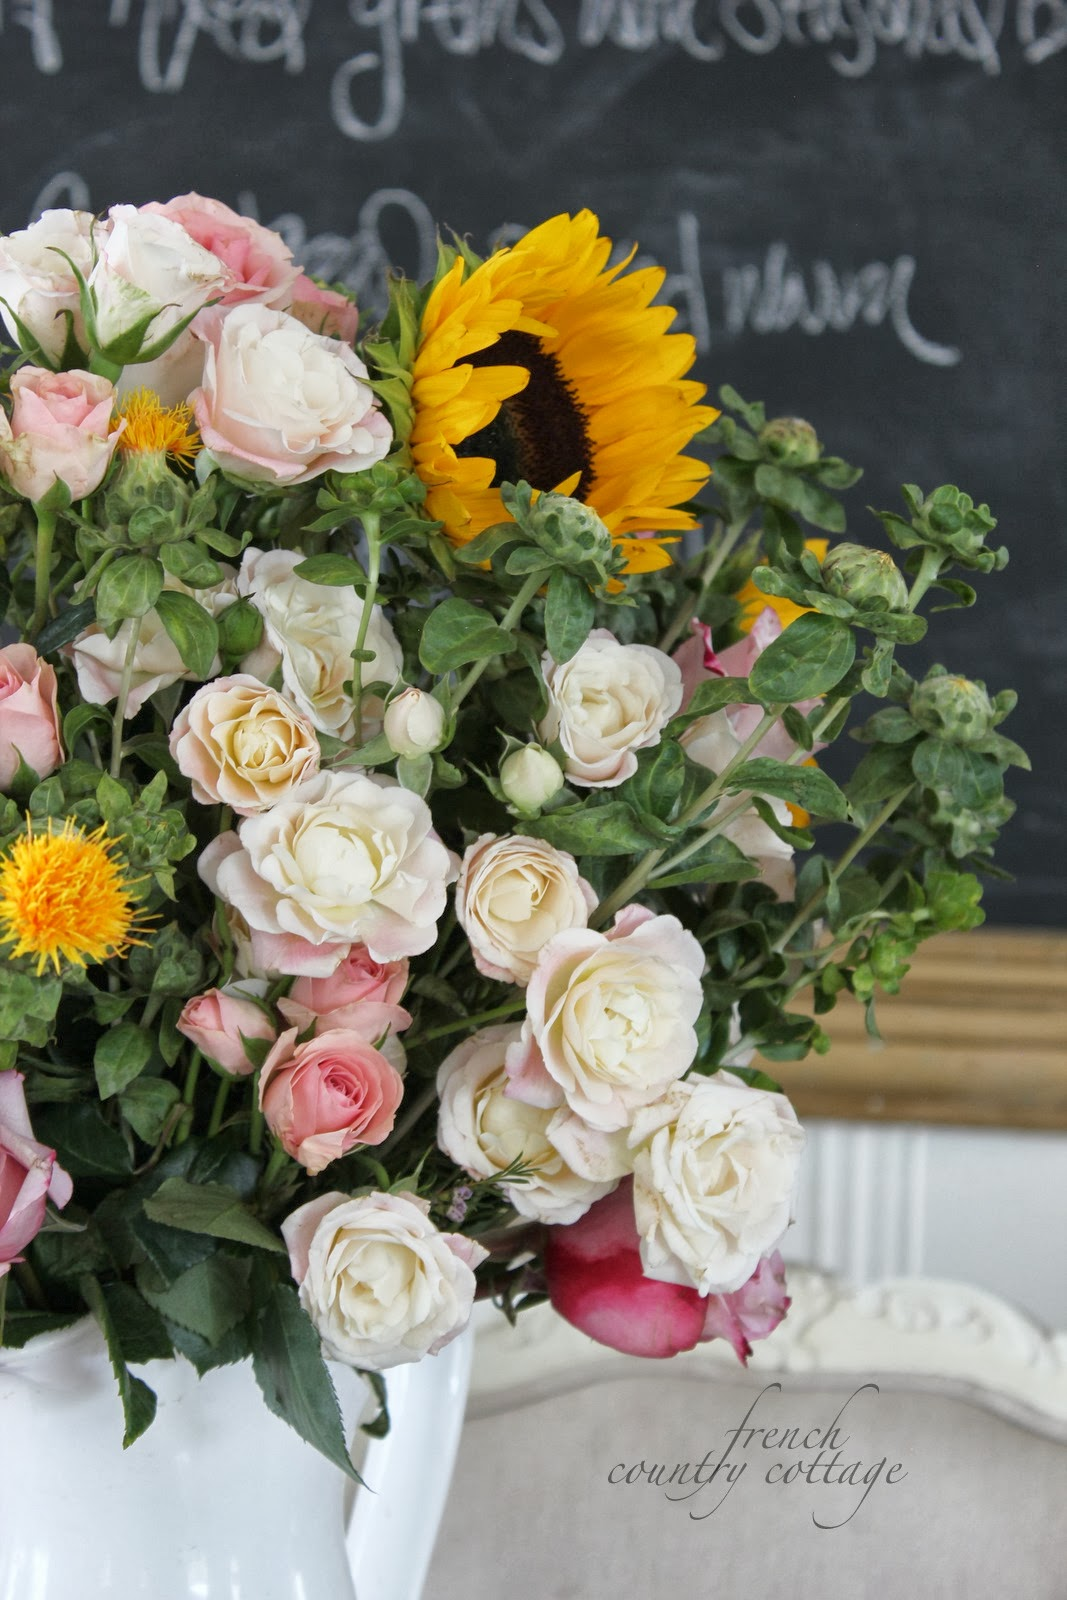 Autumn bouquet for under $20 - FRENCH COUNTRY COTTAGE